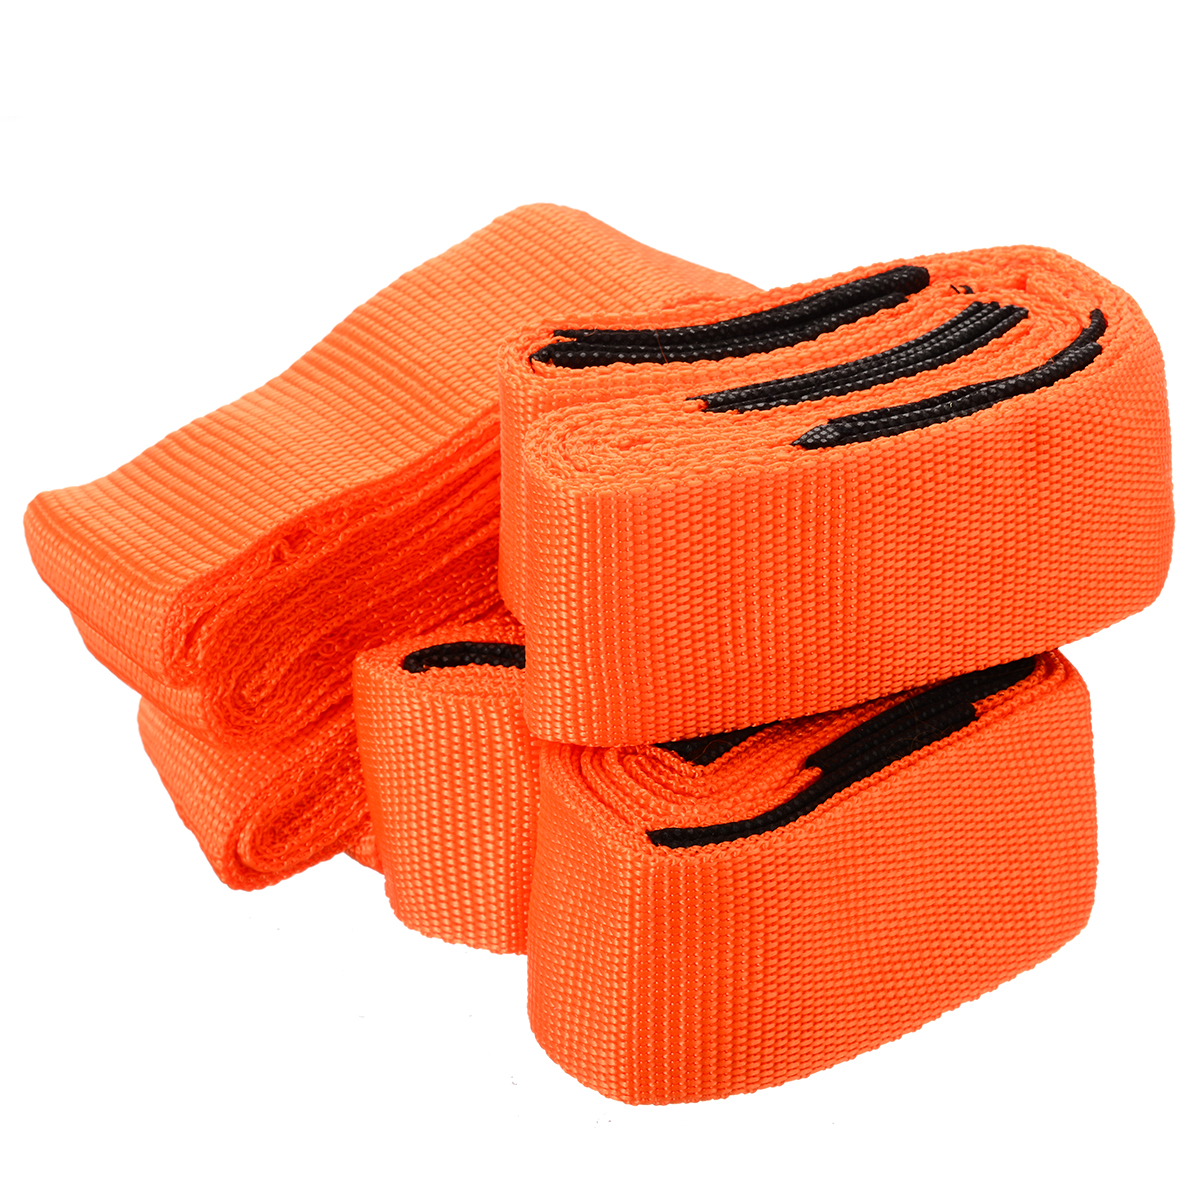 4Pcs Useful Lifting Moving Straps Harnesses Heavy Duty Furniture Cargo Movers Carry Rope Aid Shoulder Belt